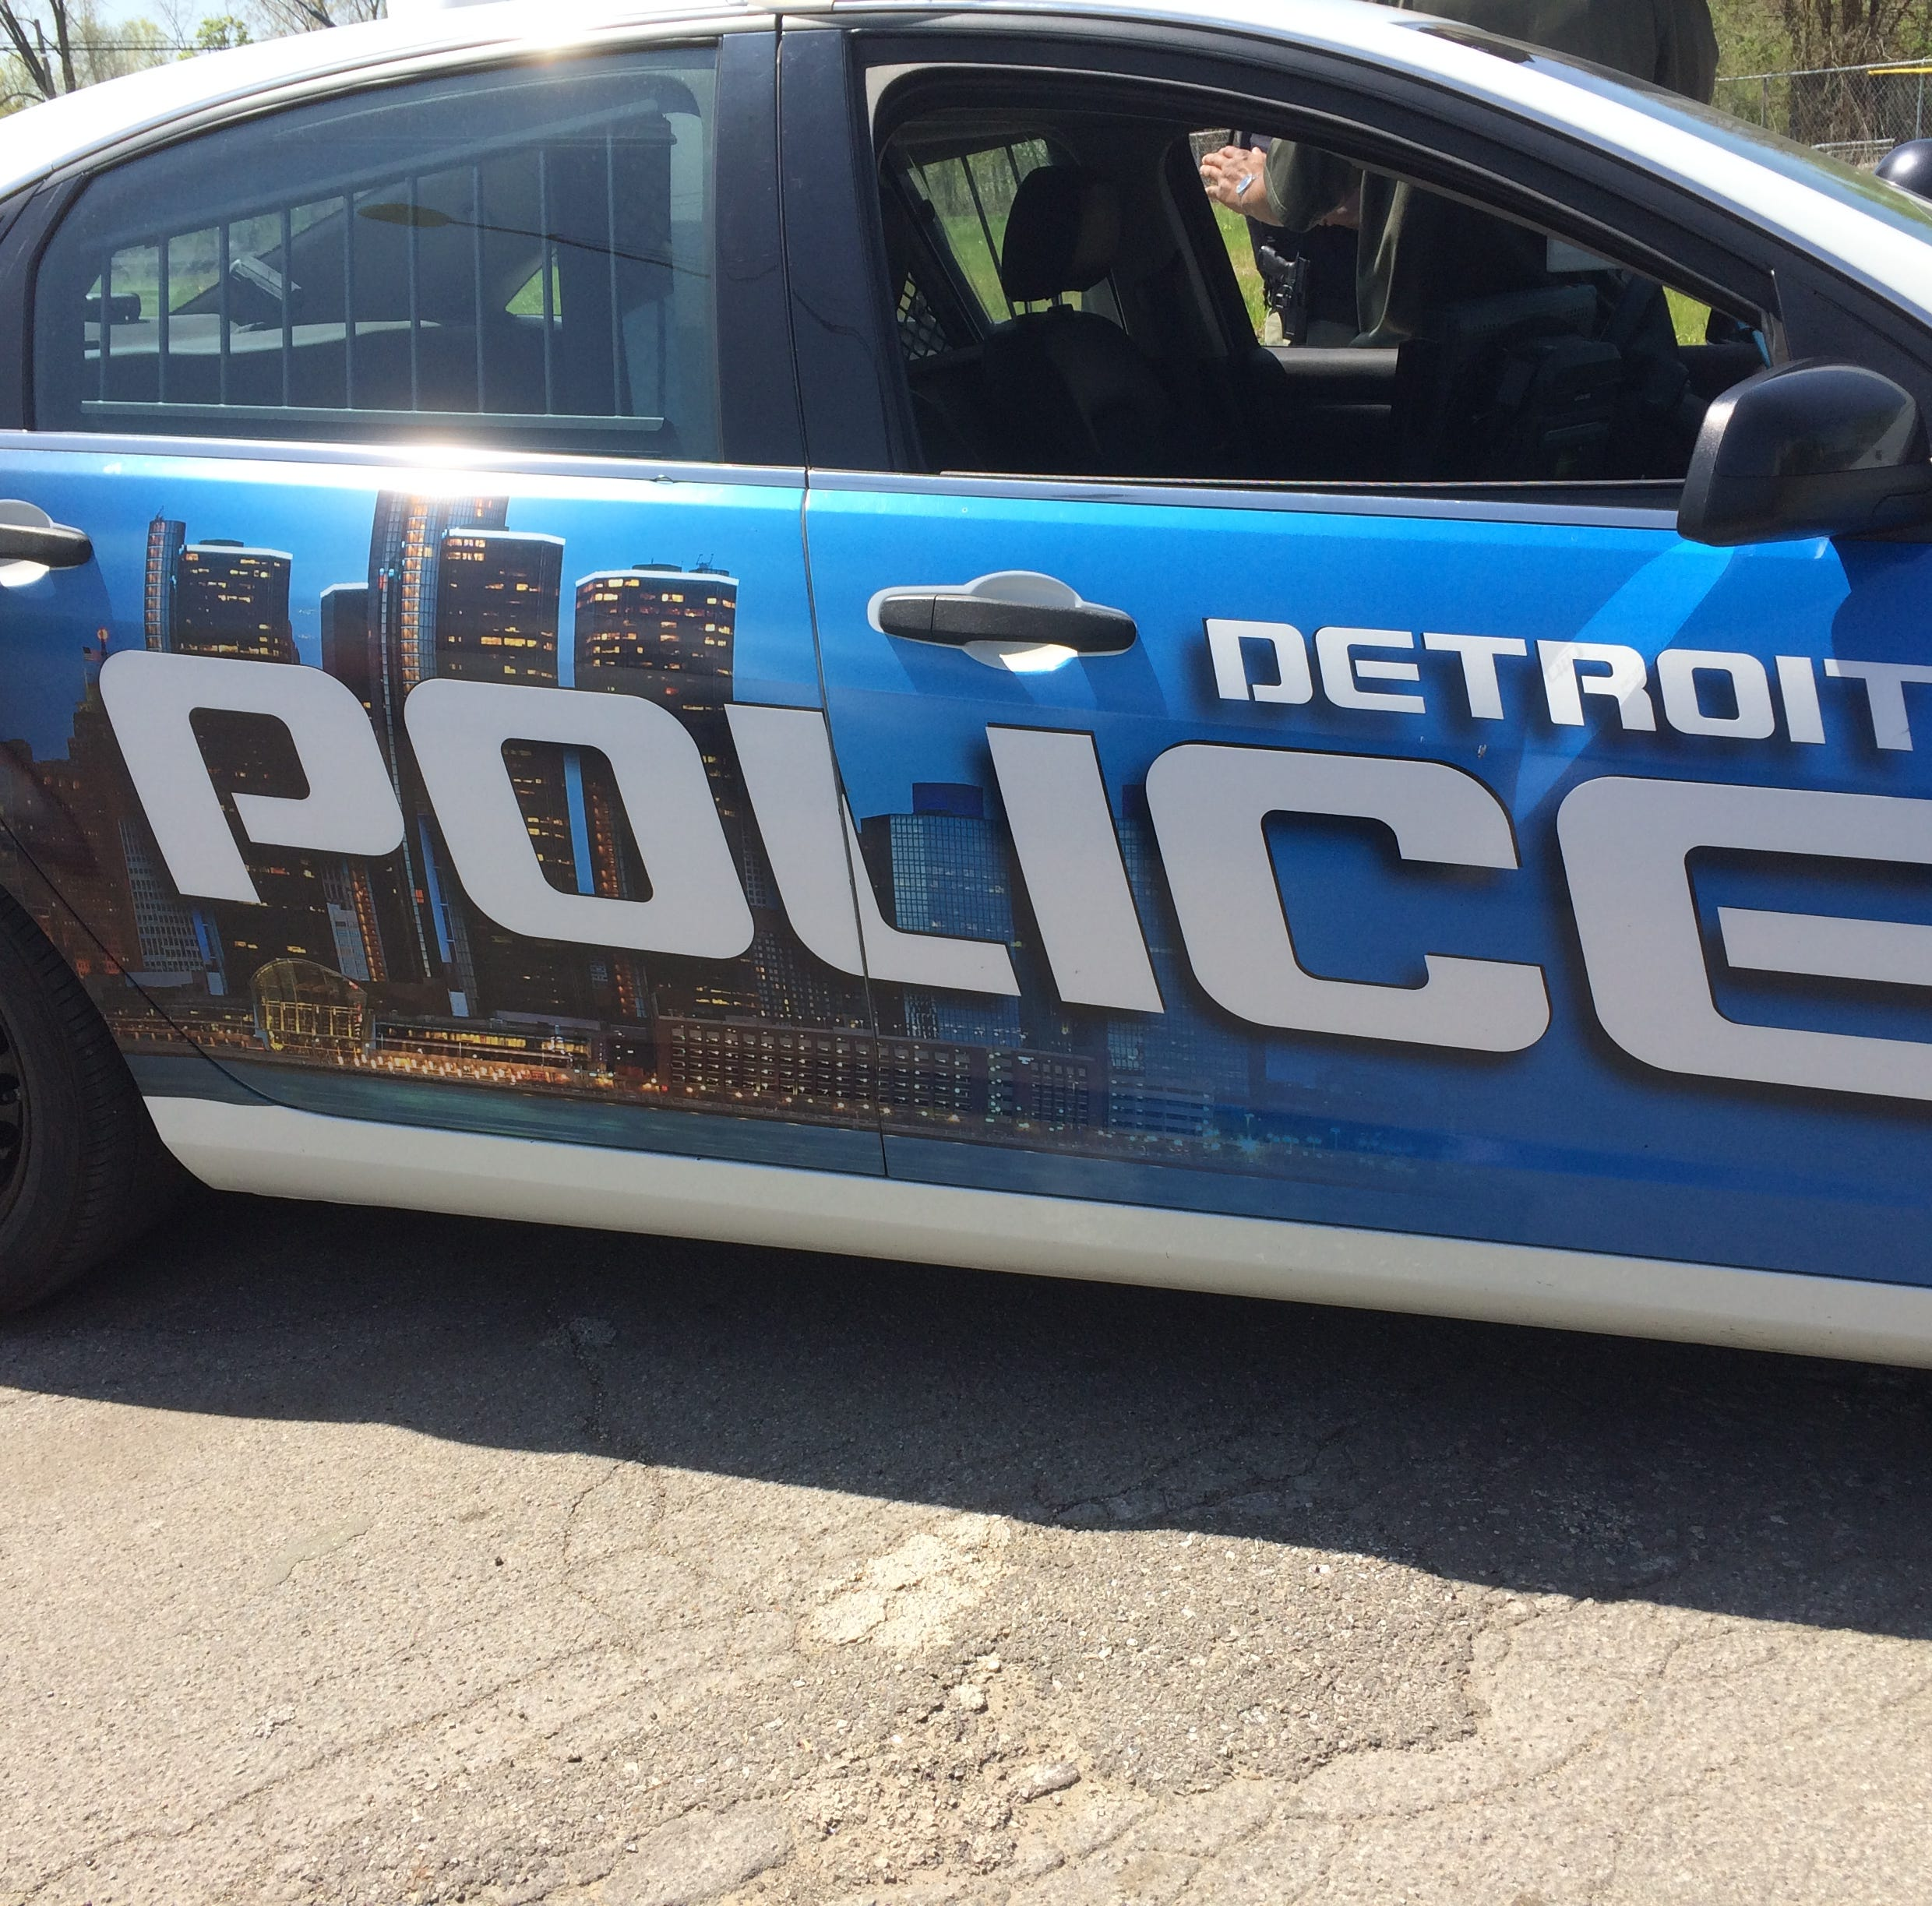 Detroit police officers to get 7% raise over 3 years